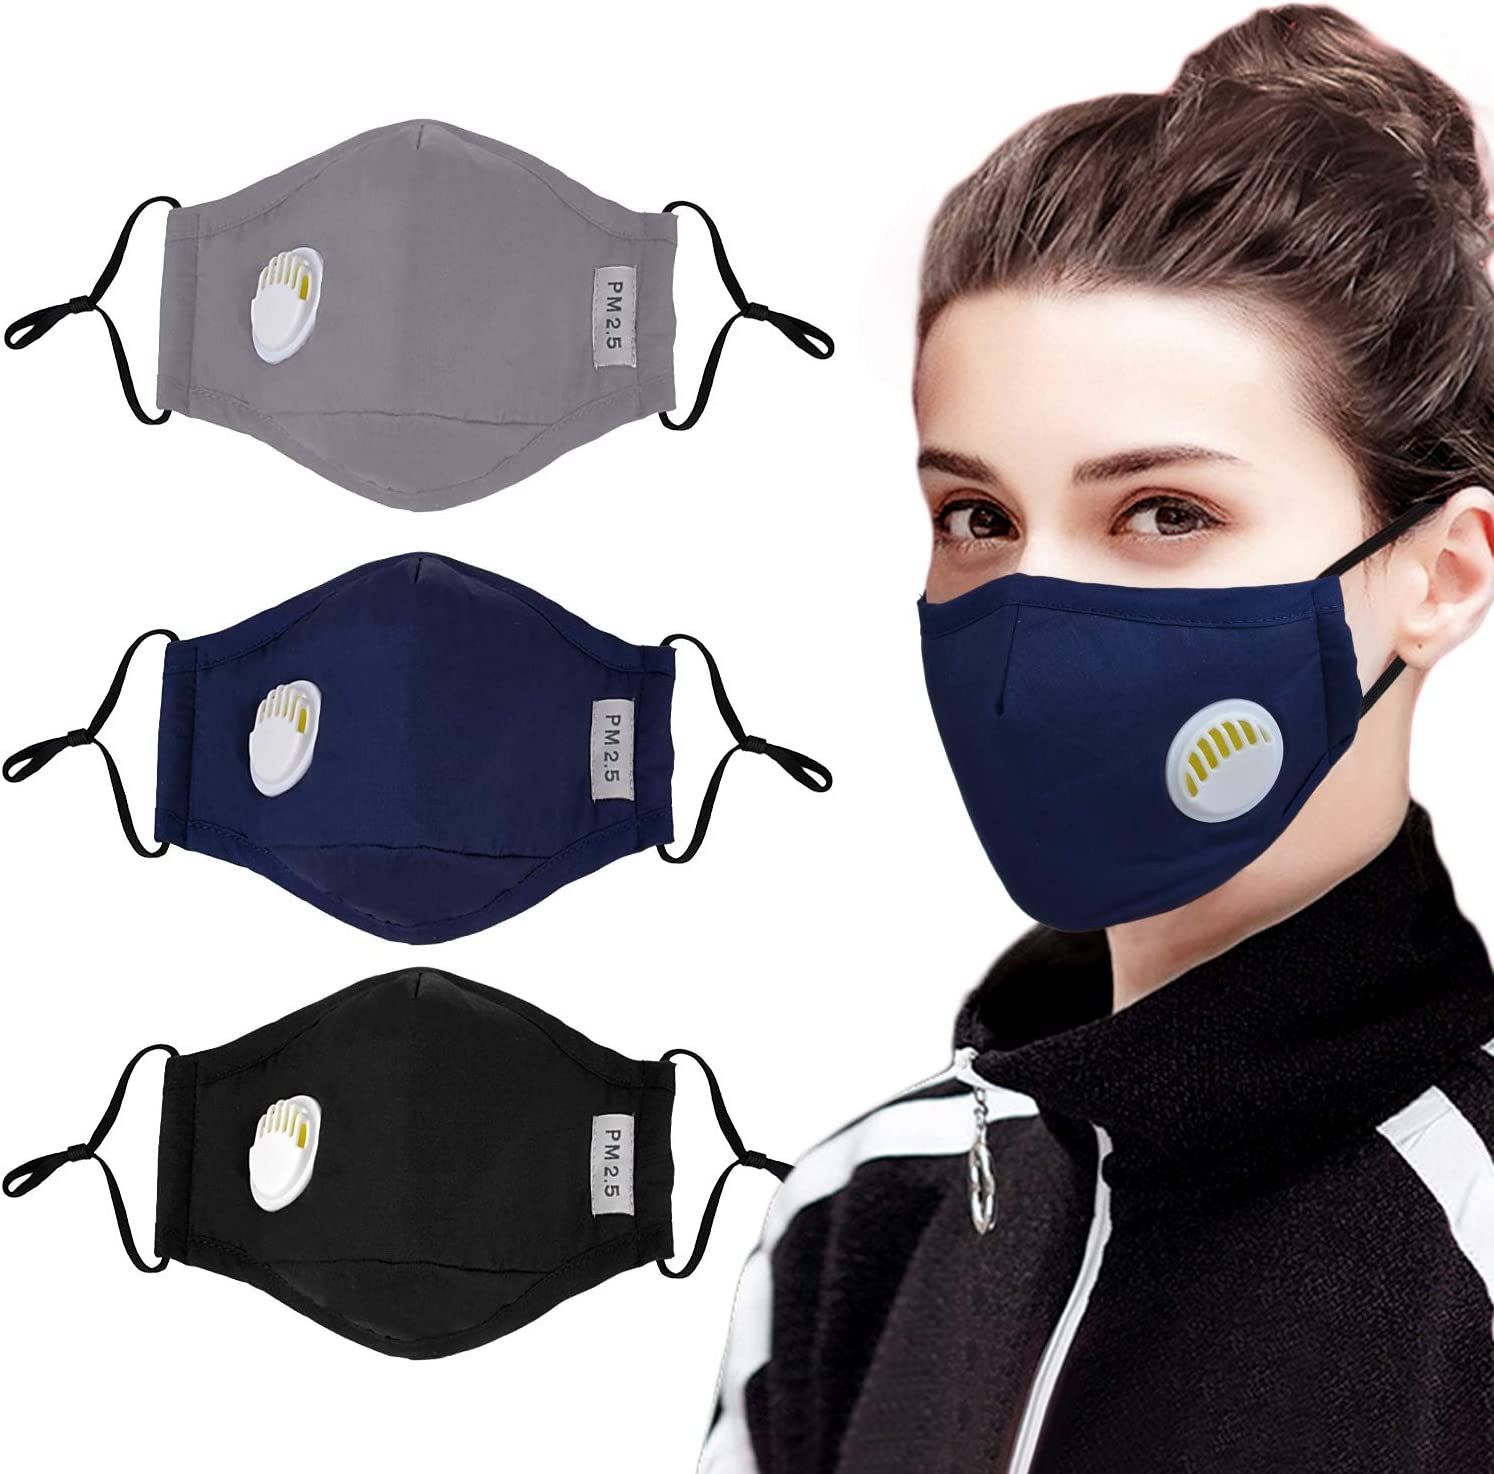 Black Cloth Face Cover Breathable Material with 4 Active Carbon Filter Pads